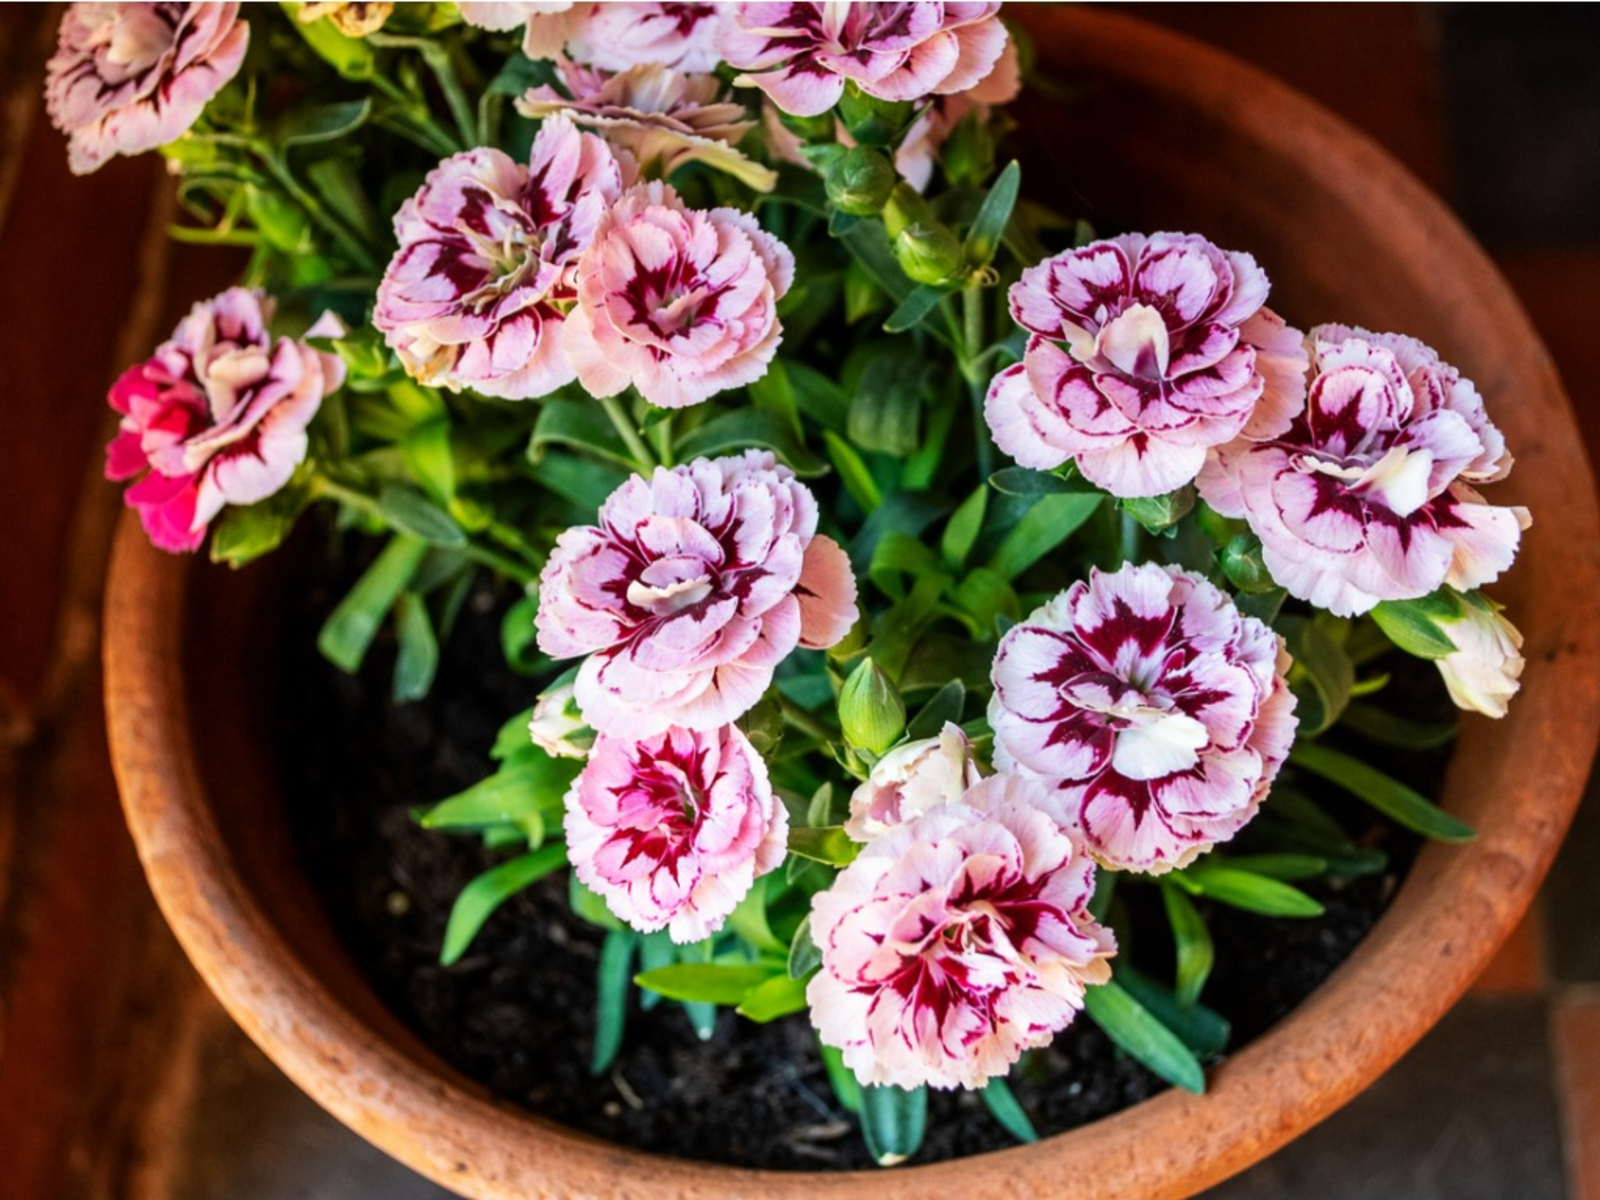 Planting Carnation Seeds How To Grow Carnation Flowers